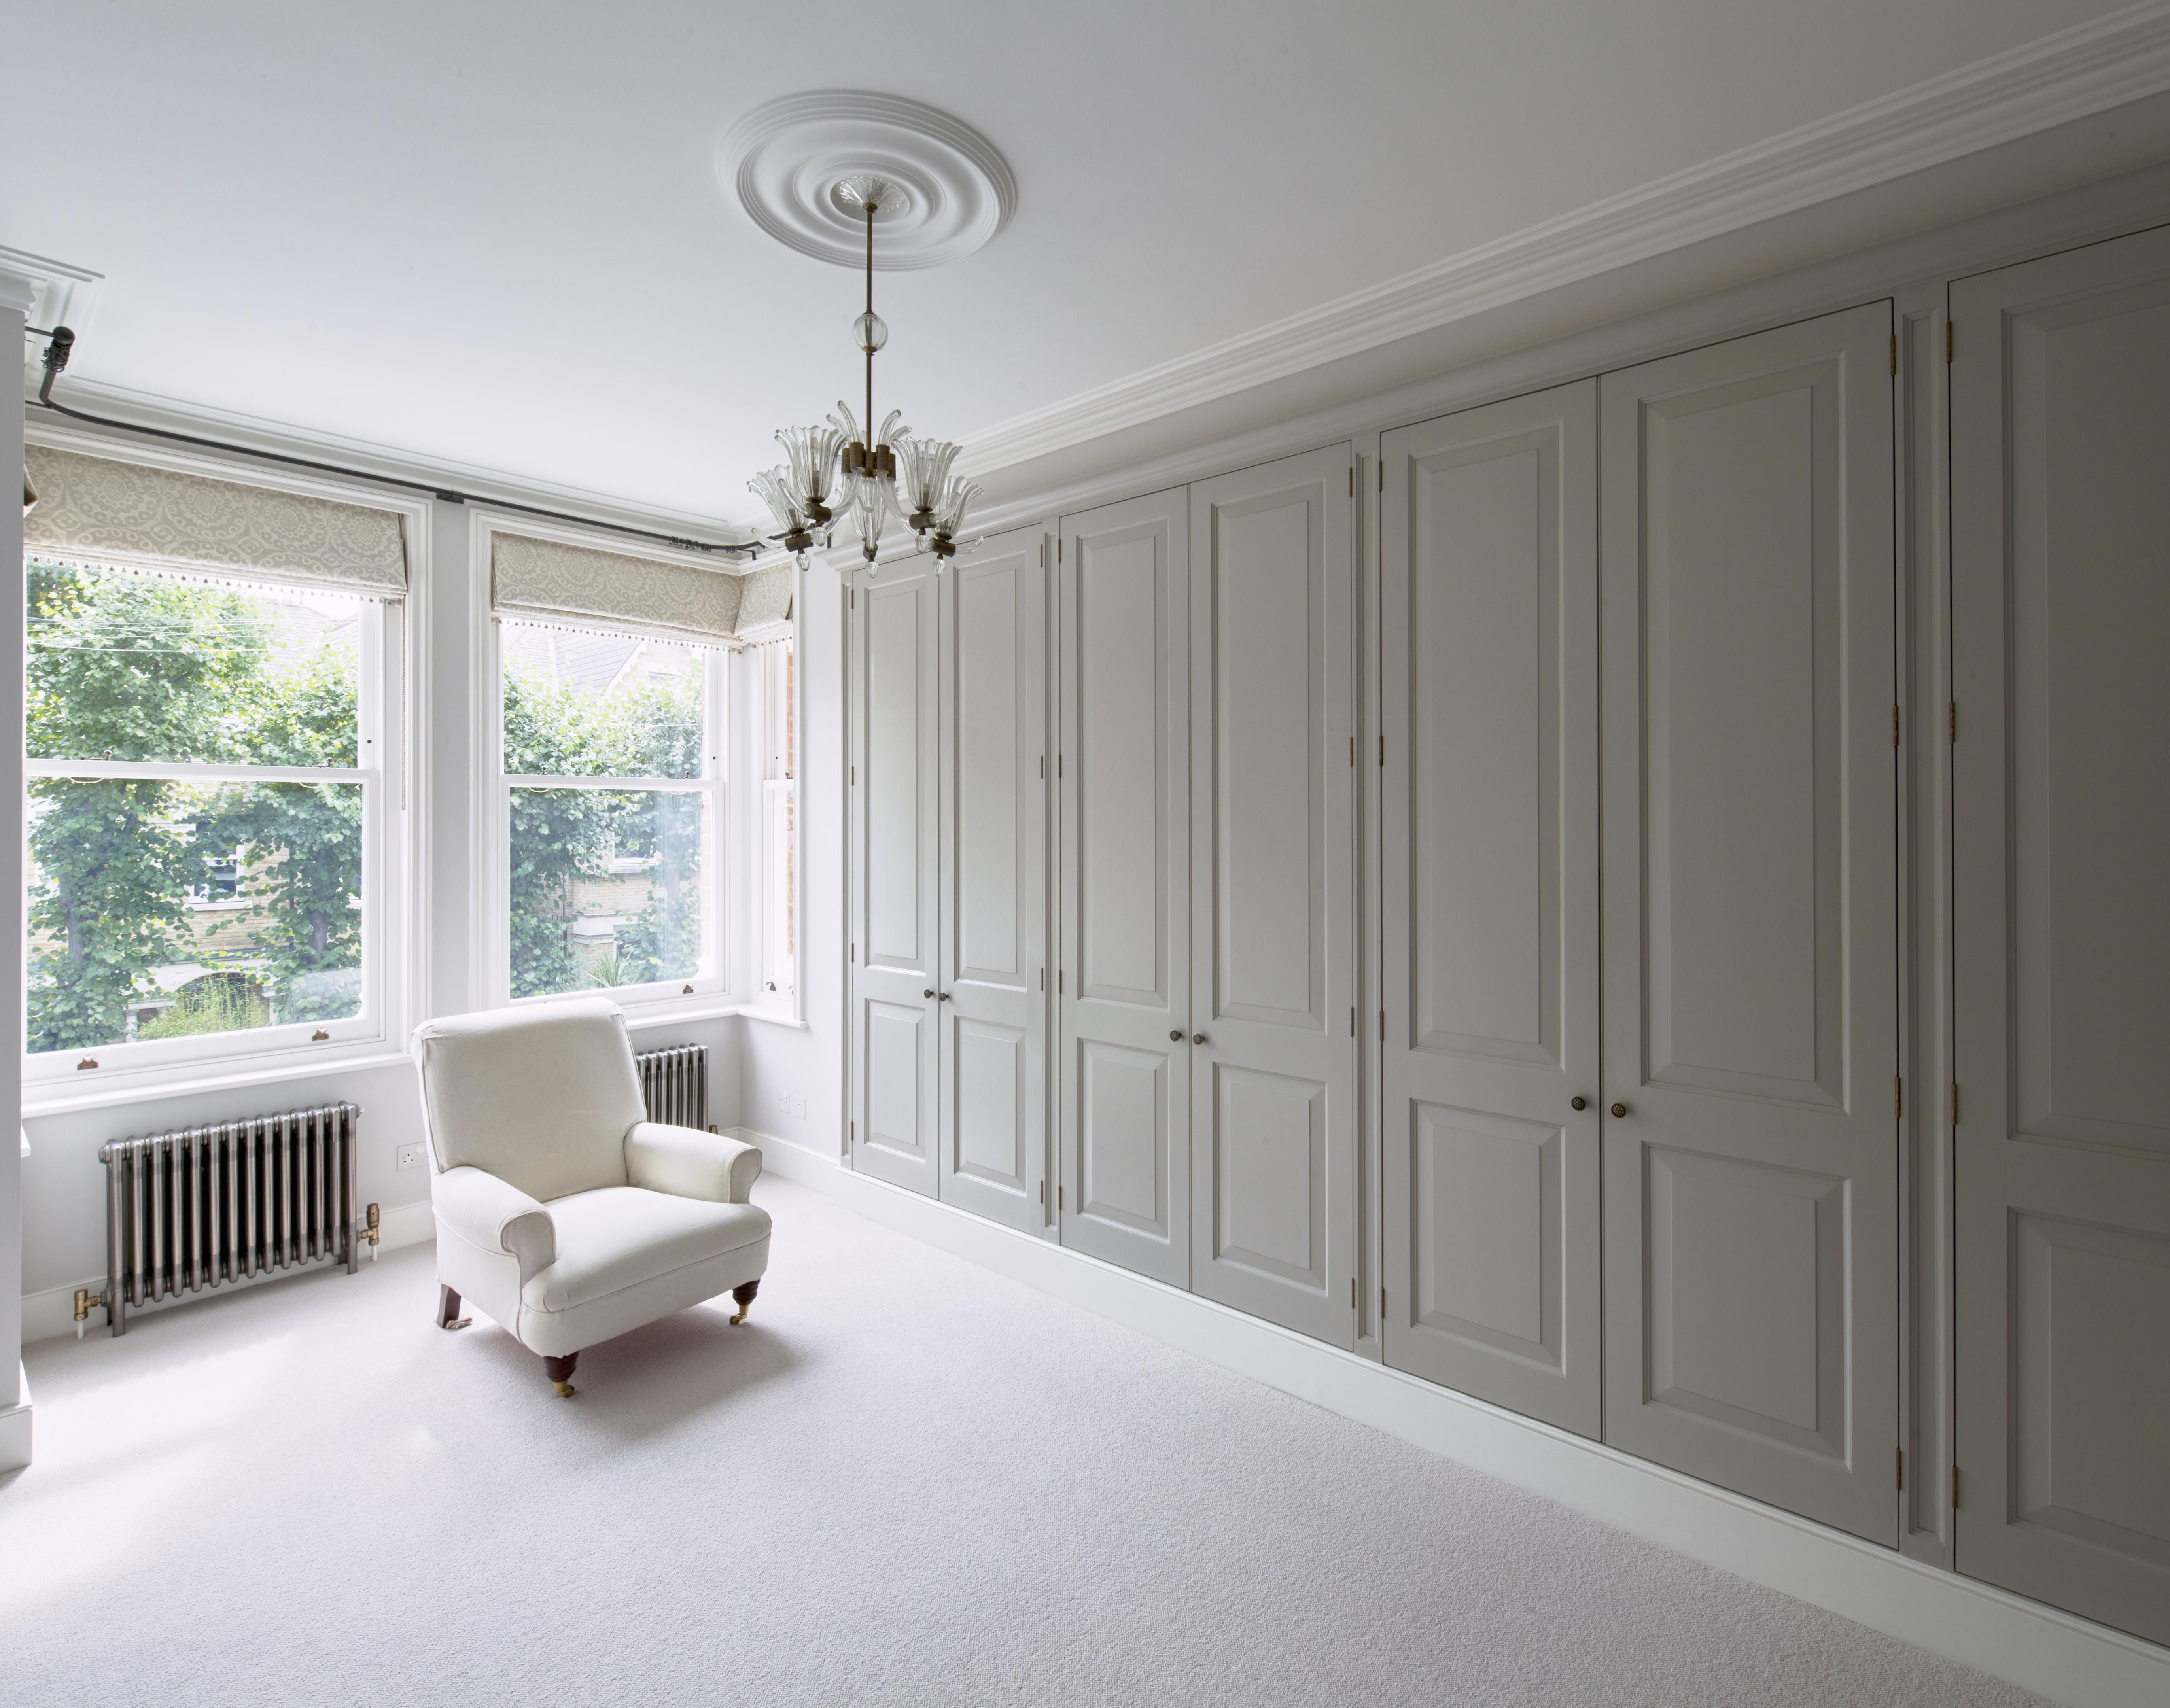 master bedroom bespoke wardrobes, timber doors with raised and